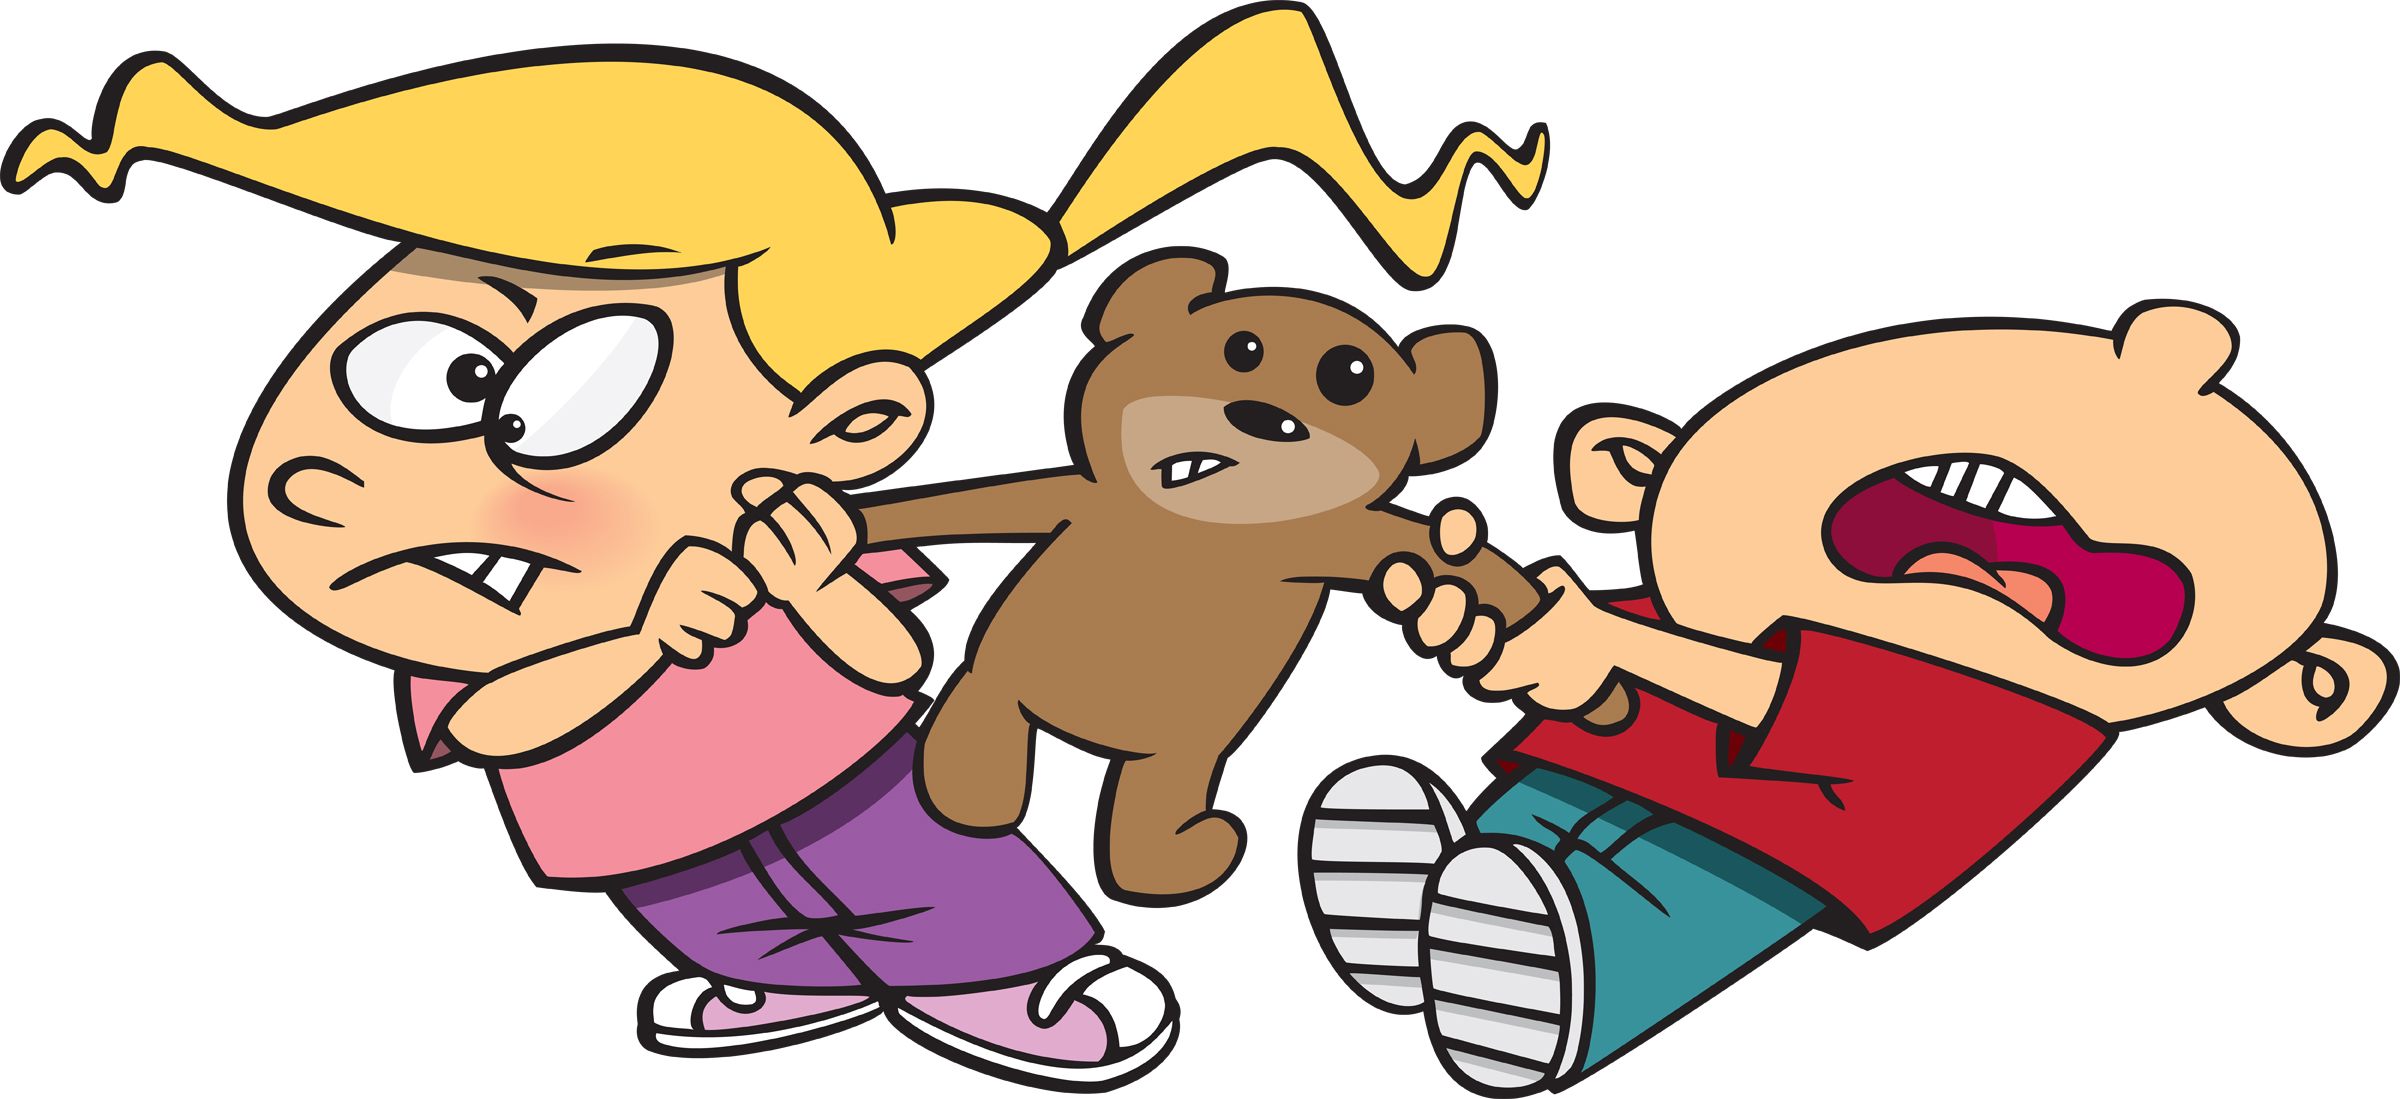 2400x1099 Cartoon Clipart Of Kids Collection